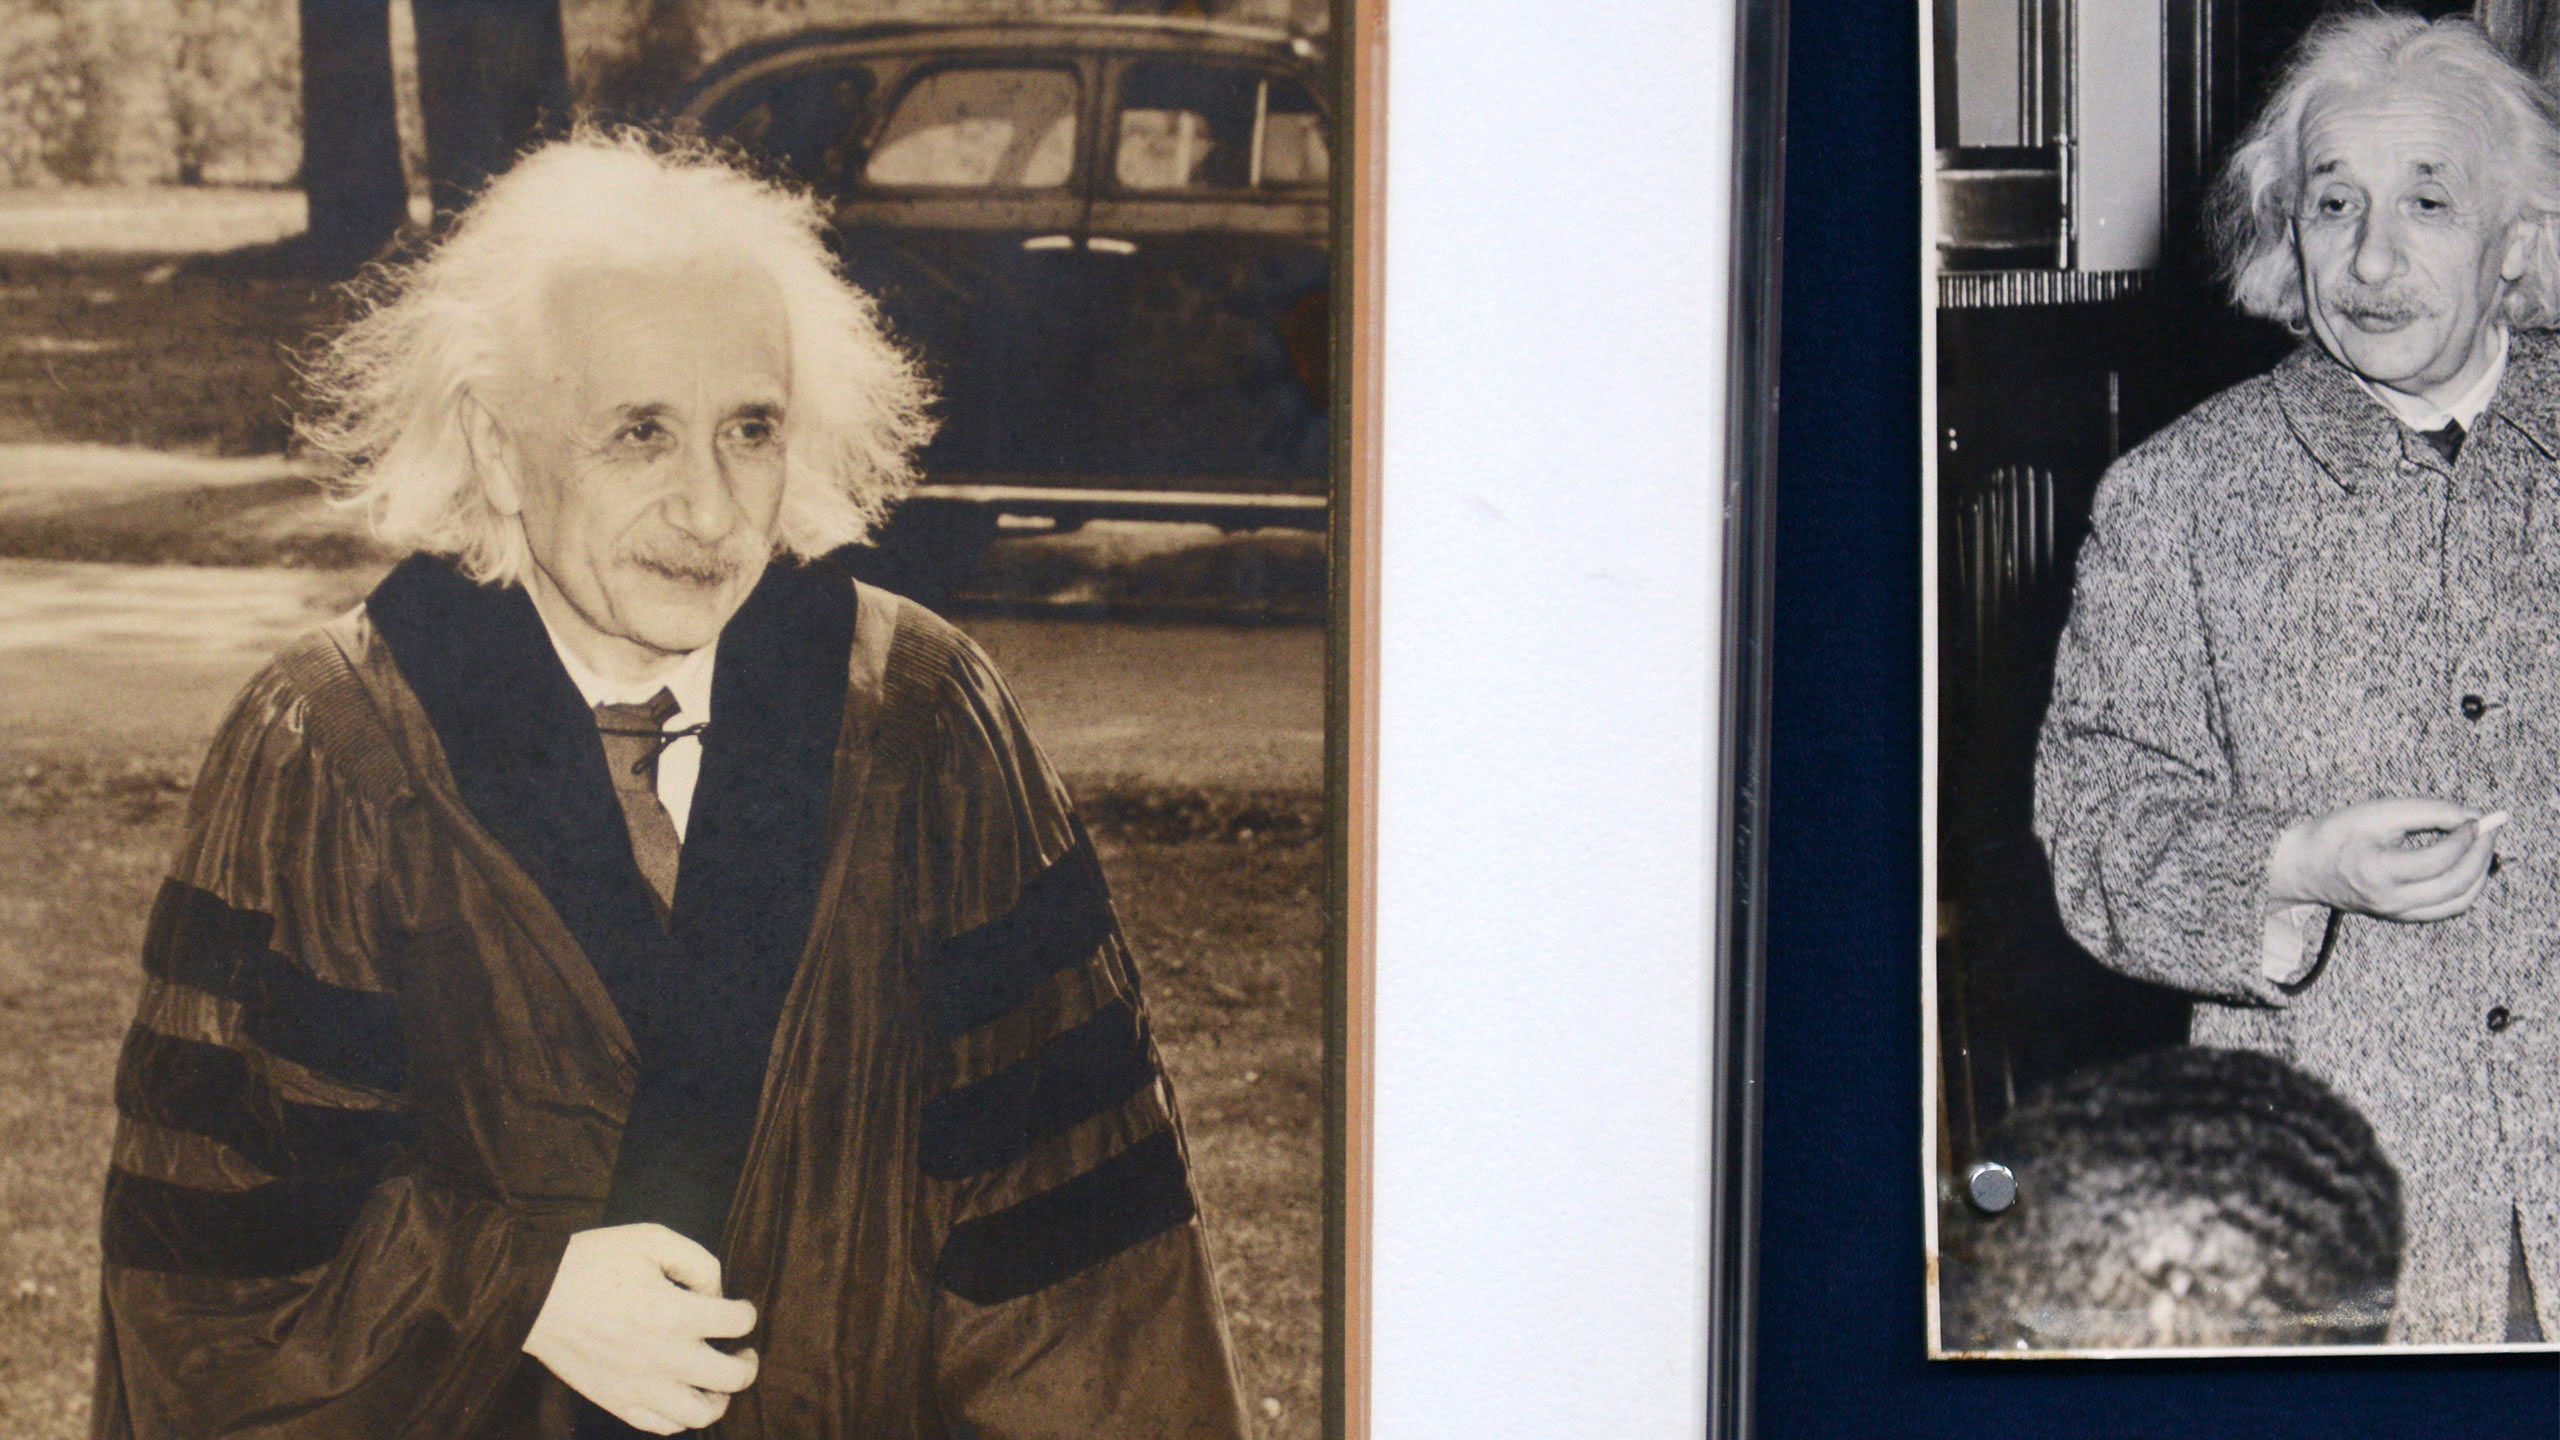 https://www-tc.pbs.org/prod-media/antiques-roadshow/article/images/Einstein-civil-rights-lede-1.jpg